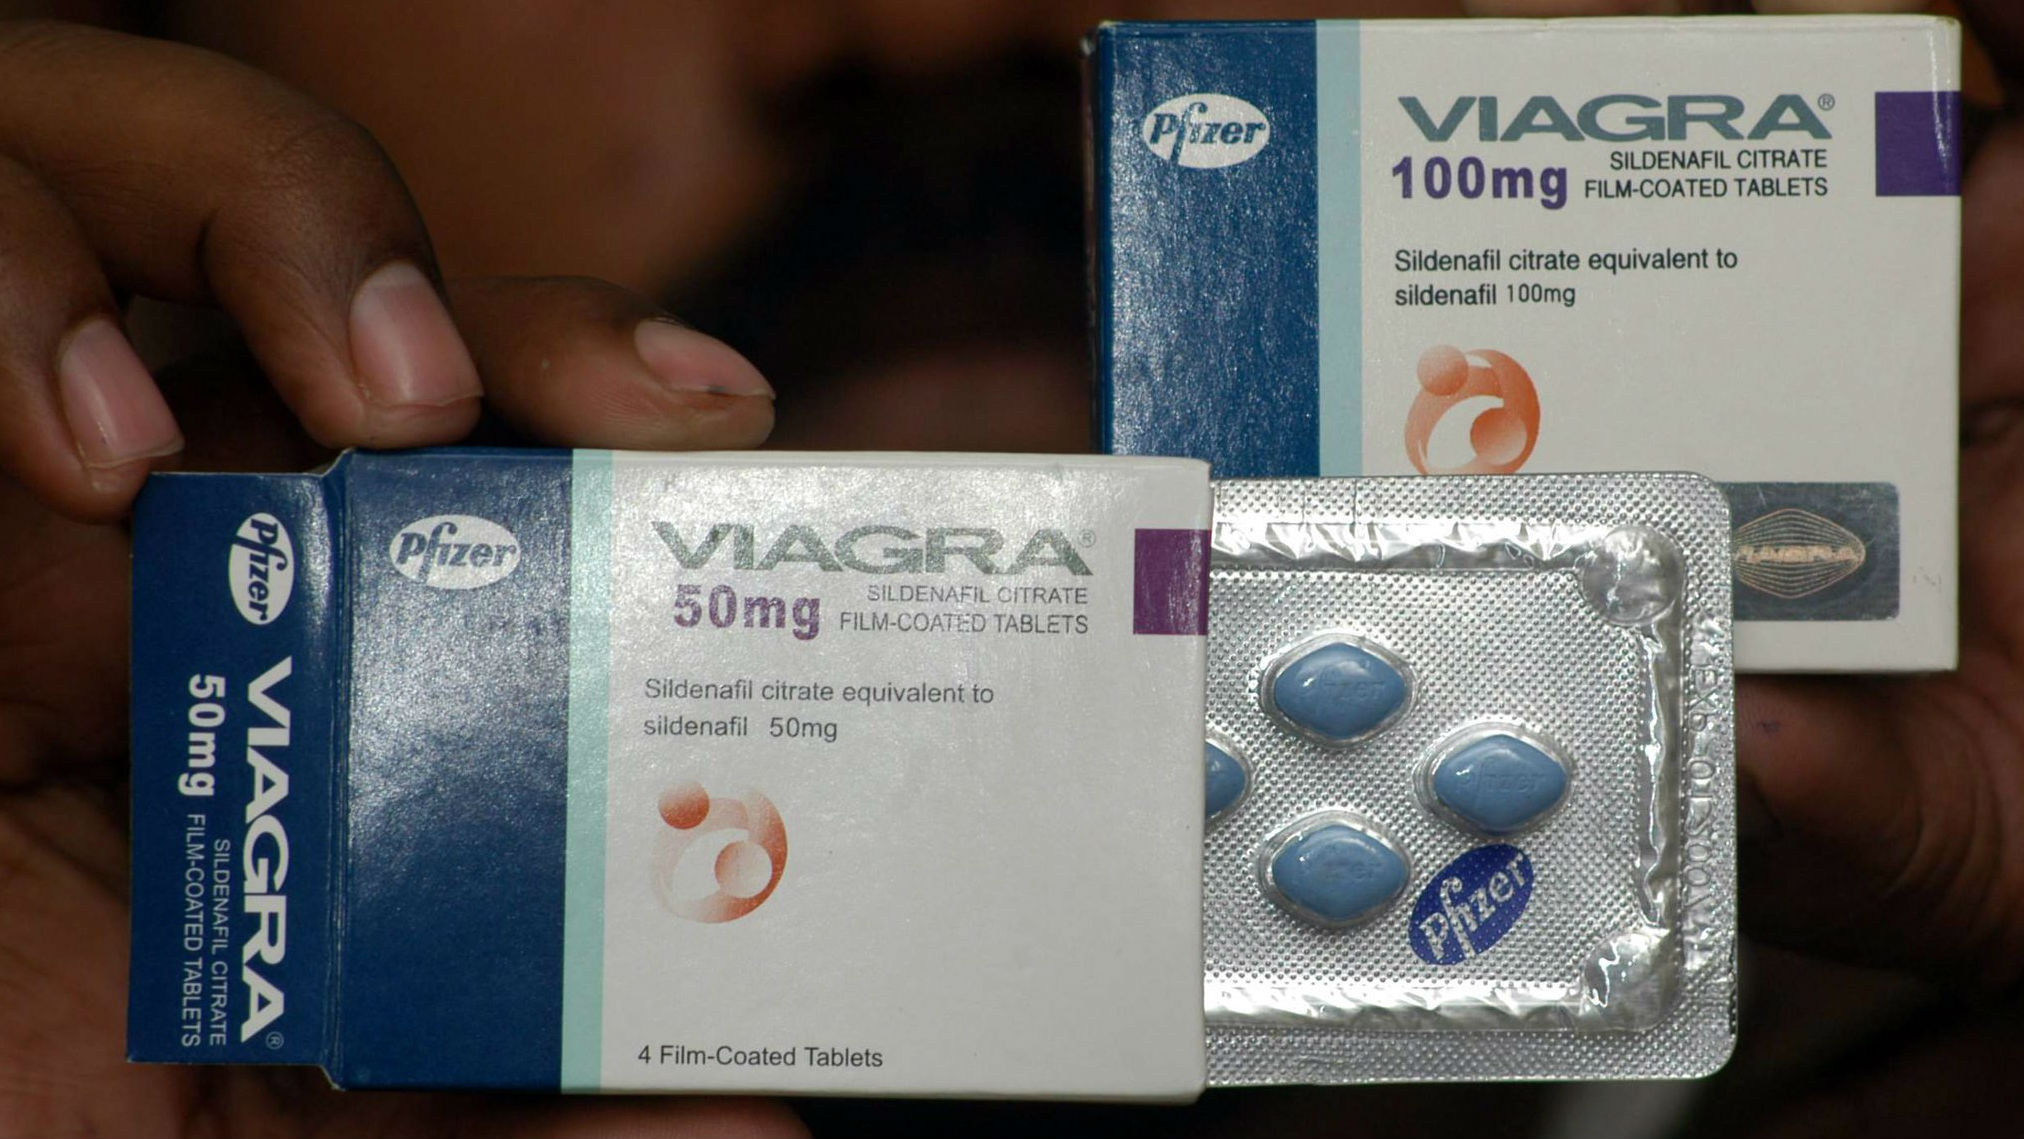 """A photograph released on Tuesday 08 February 2005 shows anti-impotency drug Viagra in Multan. Pakistan's Drug Appellate Board has allowed the sale of Viagra in the country and asked the concerned authorities to consider its registration along with 15 other contenders. Seven years ago, the authorities had ruled that Viagra sales were """"not in public interest"""". The new push has come from the Drug Appellate Board at its meeting here Jan 27, 2005 chaired by Health Secretary Anwar Mehmood. Pfizer Laboratories, Karachi, the Pakistani arm of the US pharmaceutical major, had applied in 1998 for registering Viagra and the issue was referred to a comm? (caption cuts off)"""